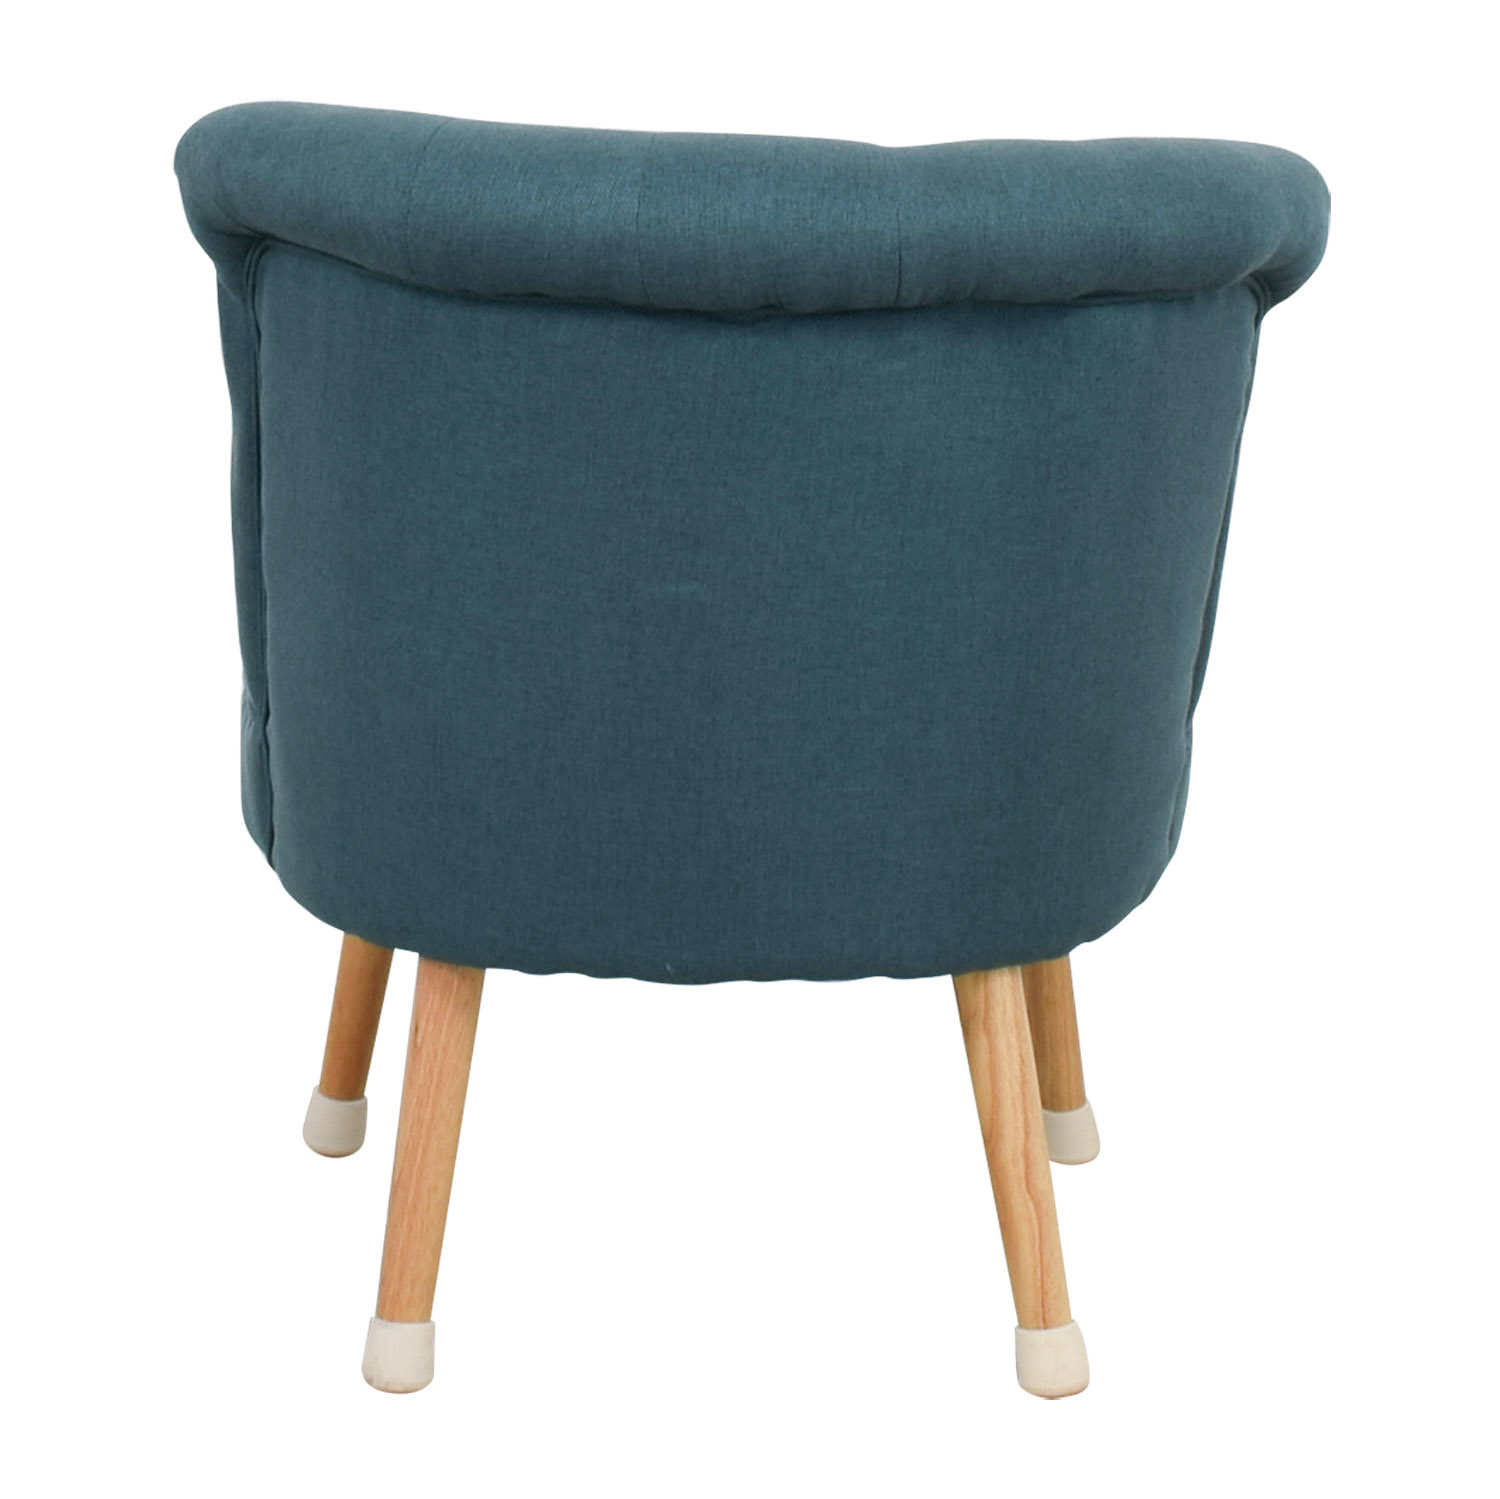 buy Christopher Knight Mid-Century Green Tufted Accent chairs Christopher Knight Accent Chairs